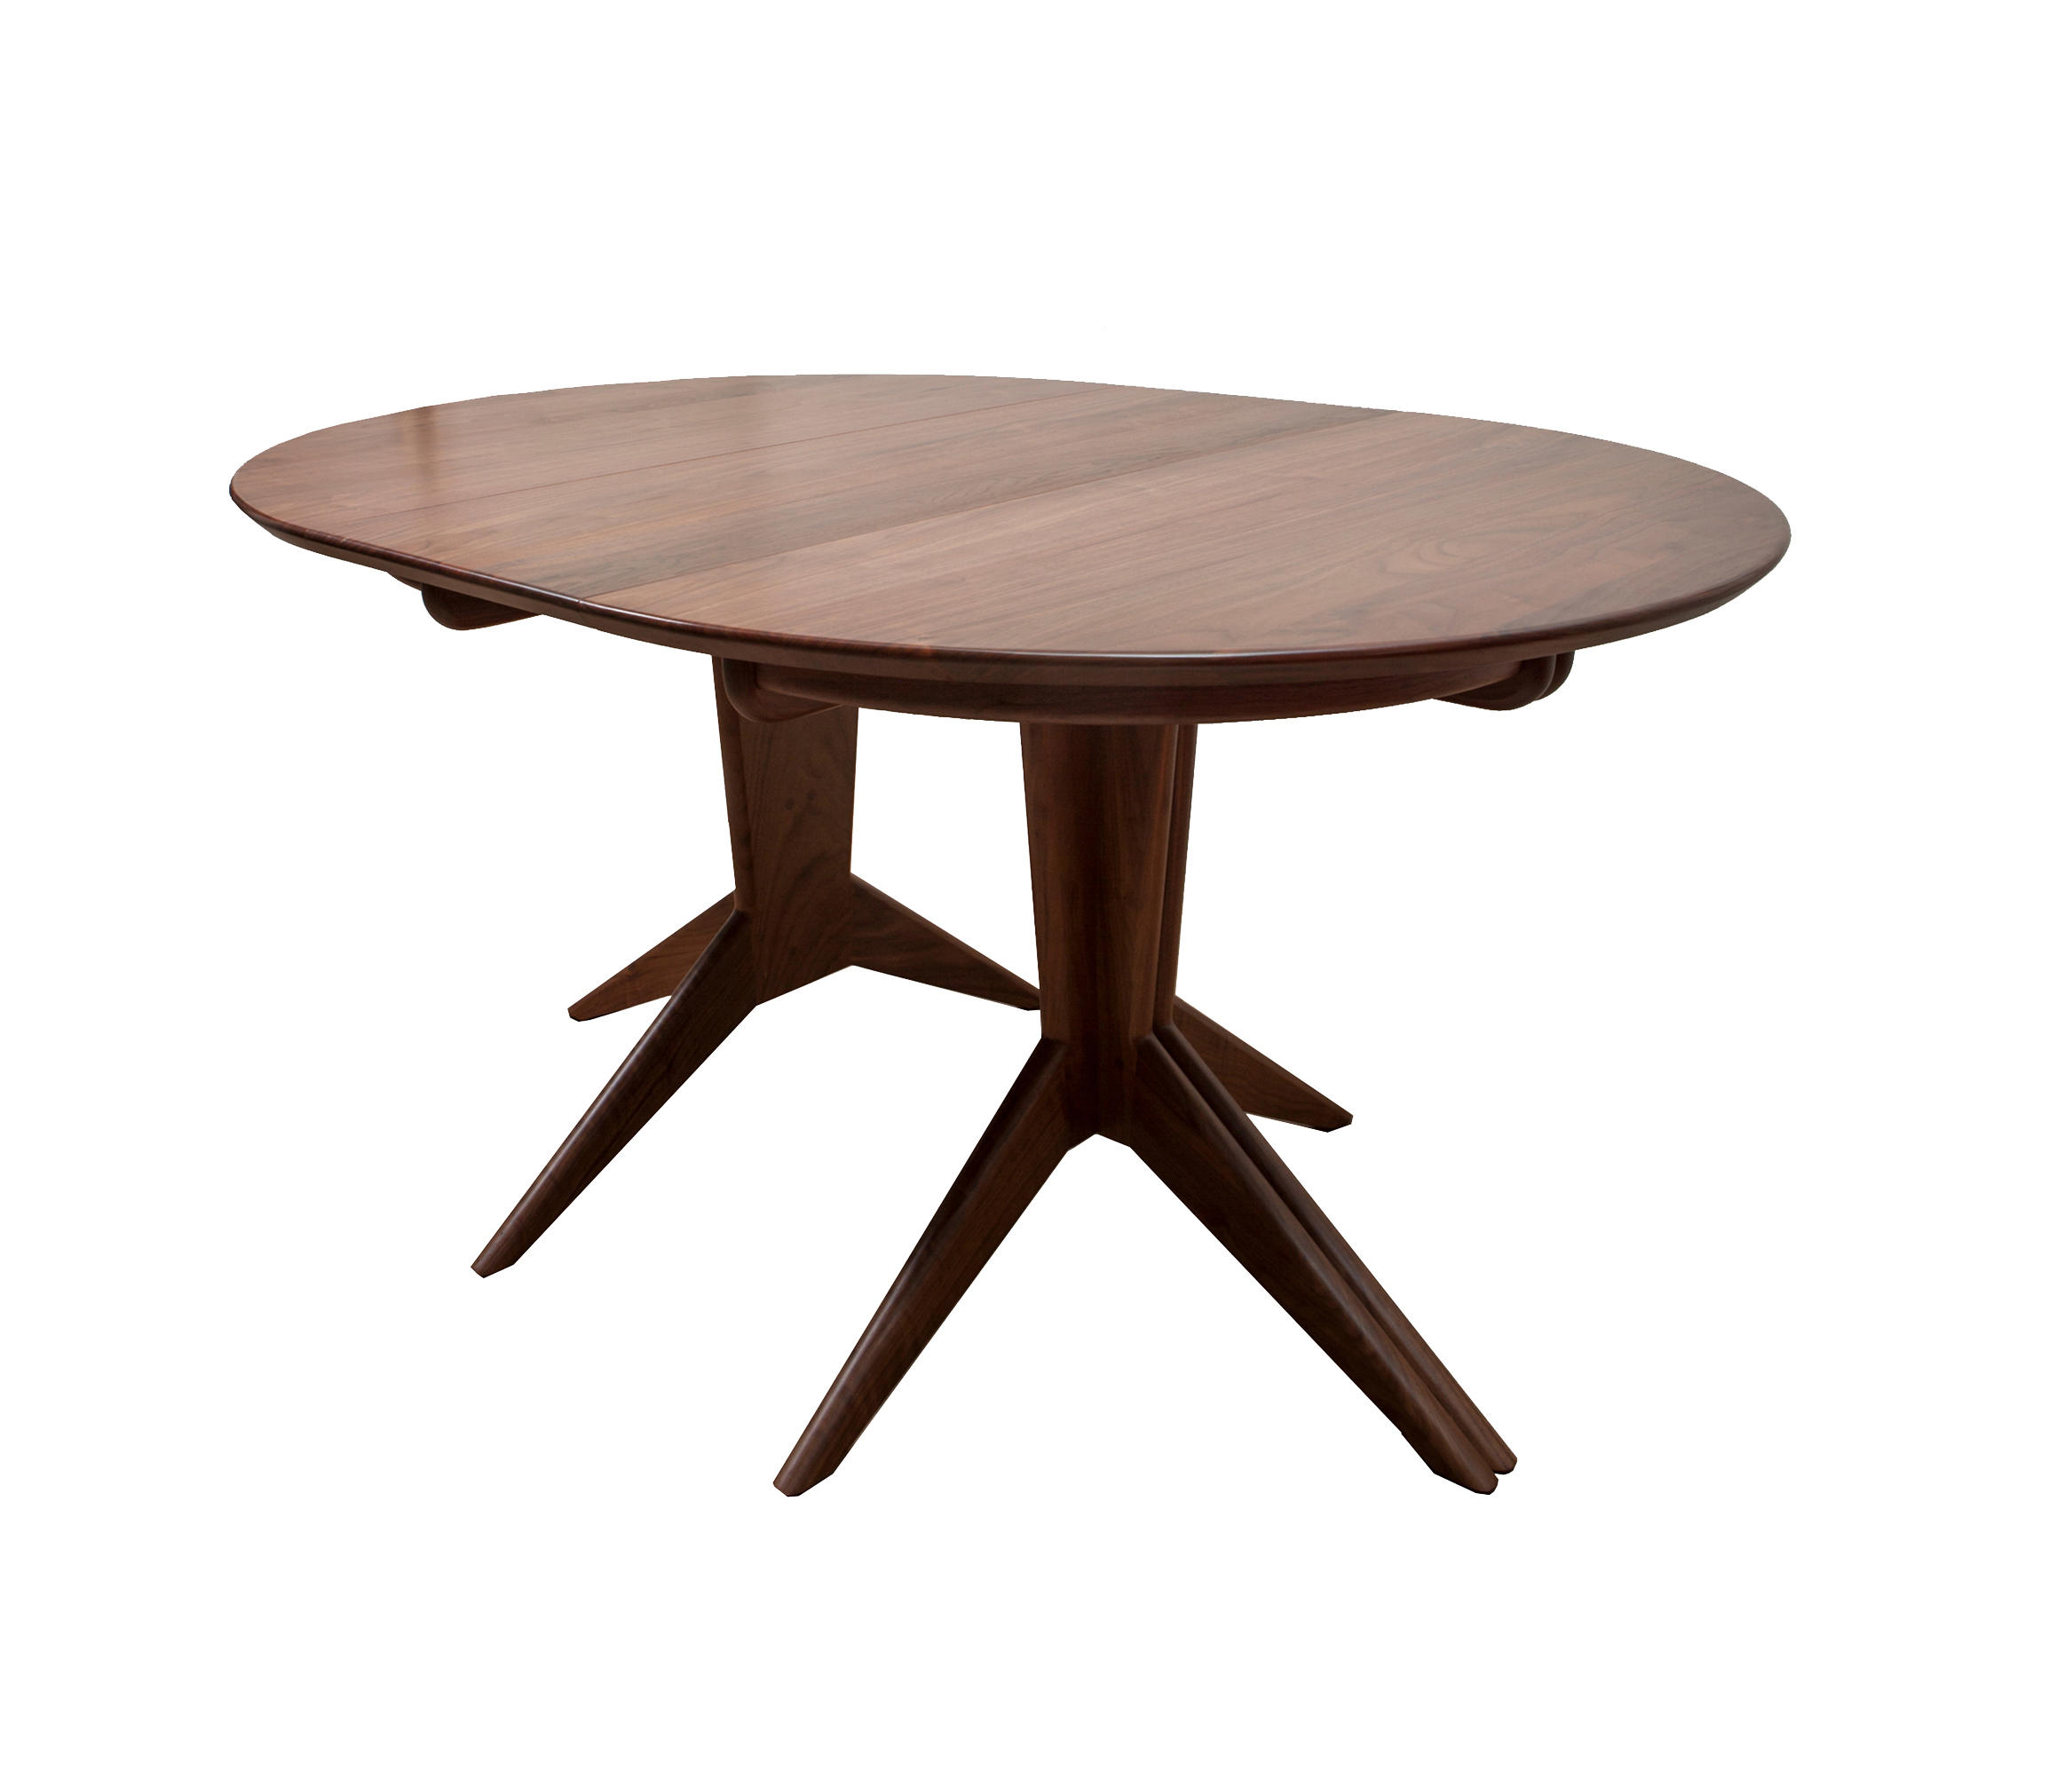 PEDESTAL EXTENSION DINING TABLE Dining tables from  : pedestaltable 5 b from www.architonic.com size 2334 x 1994 jpeg 167kB